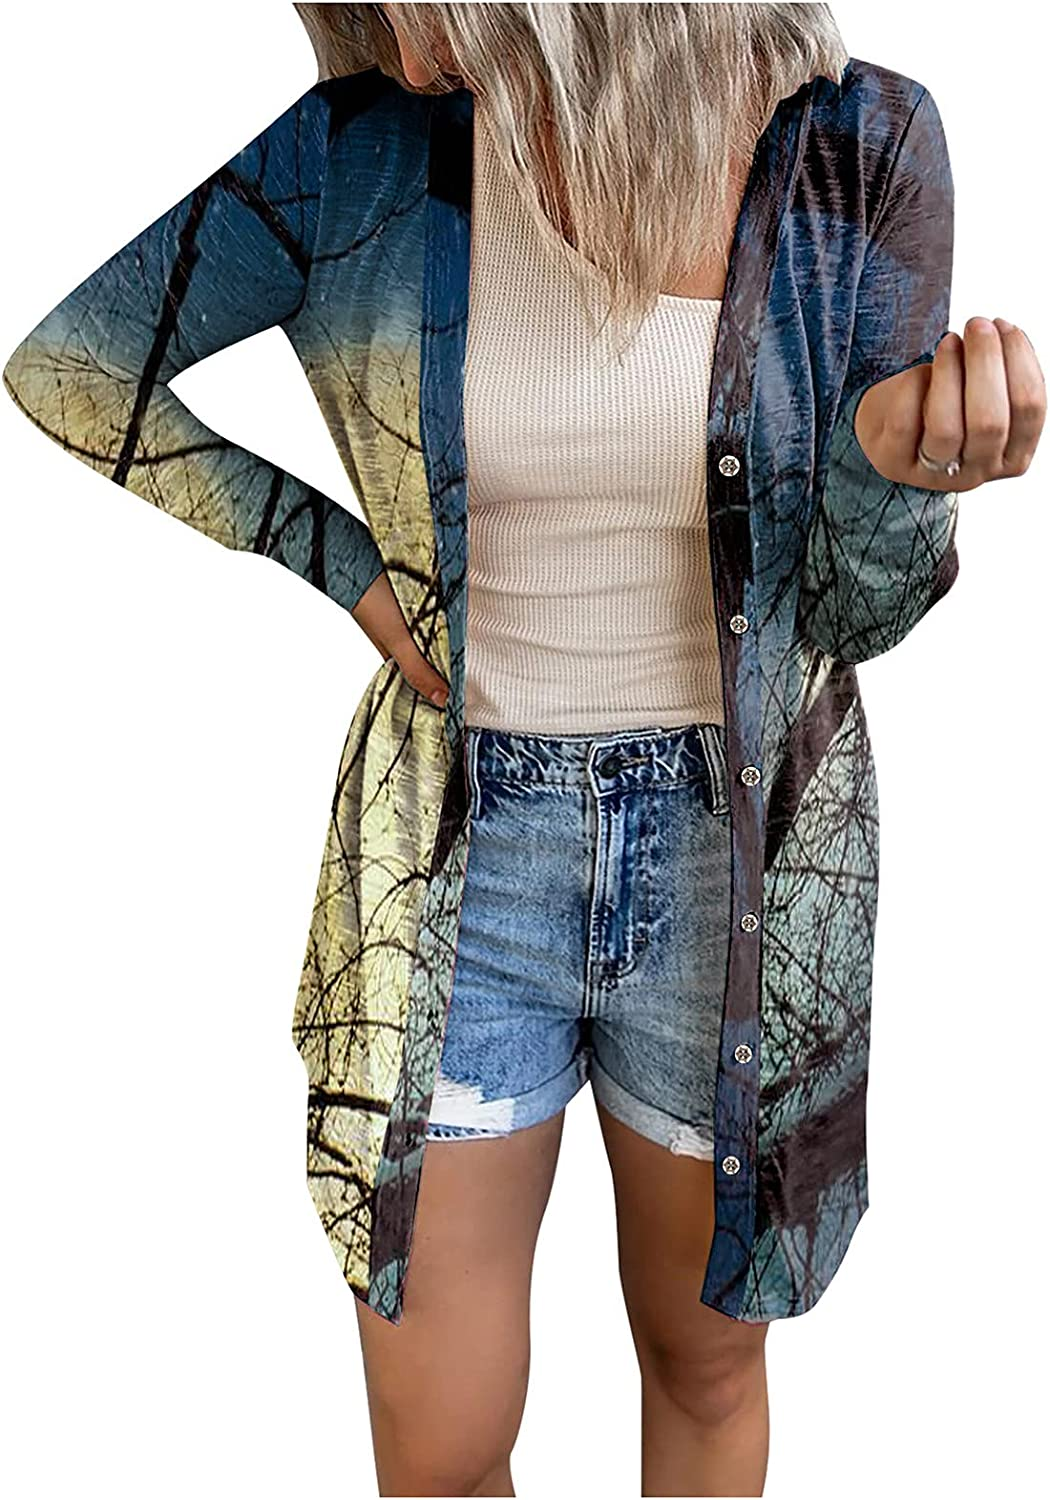 Womens Cardigan Halloween Open Front free shipping St Miami Mall 2021 Cardigans Coat Cozy